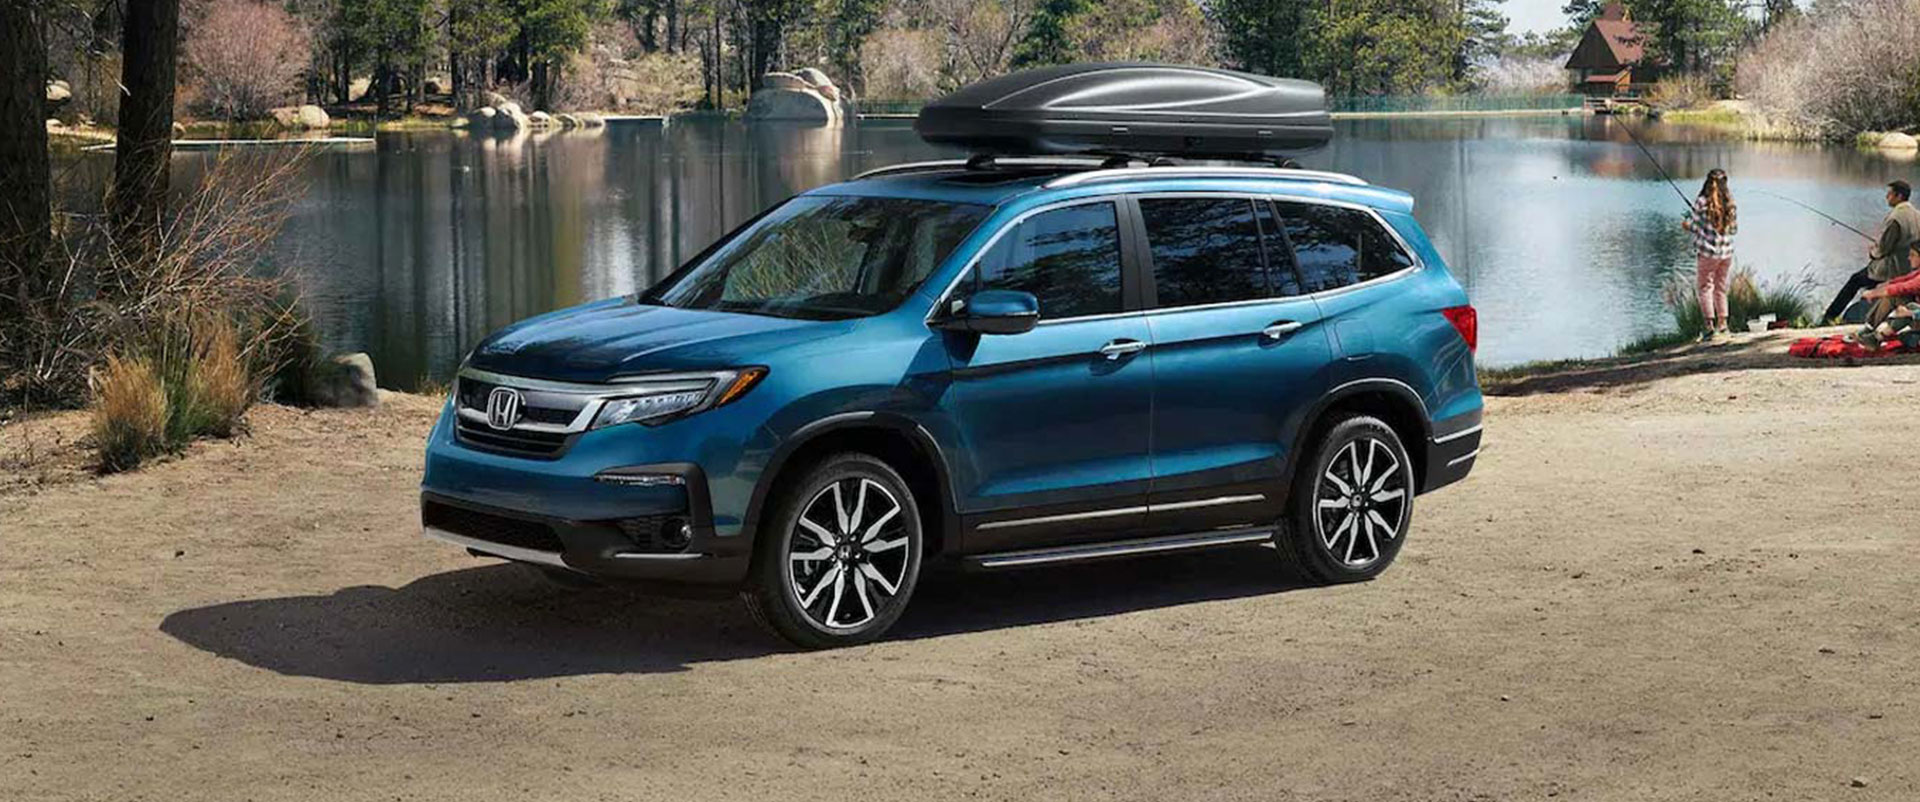 Meet the New 2020 Honda Pilot SUV Models For Sale In Akron, Ohio